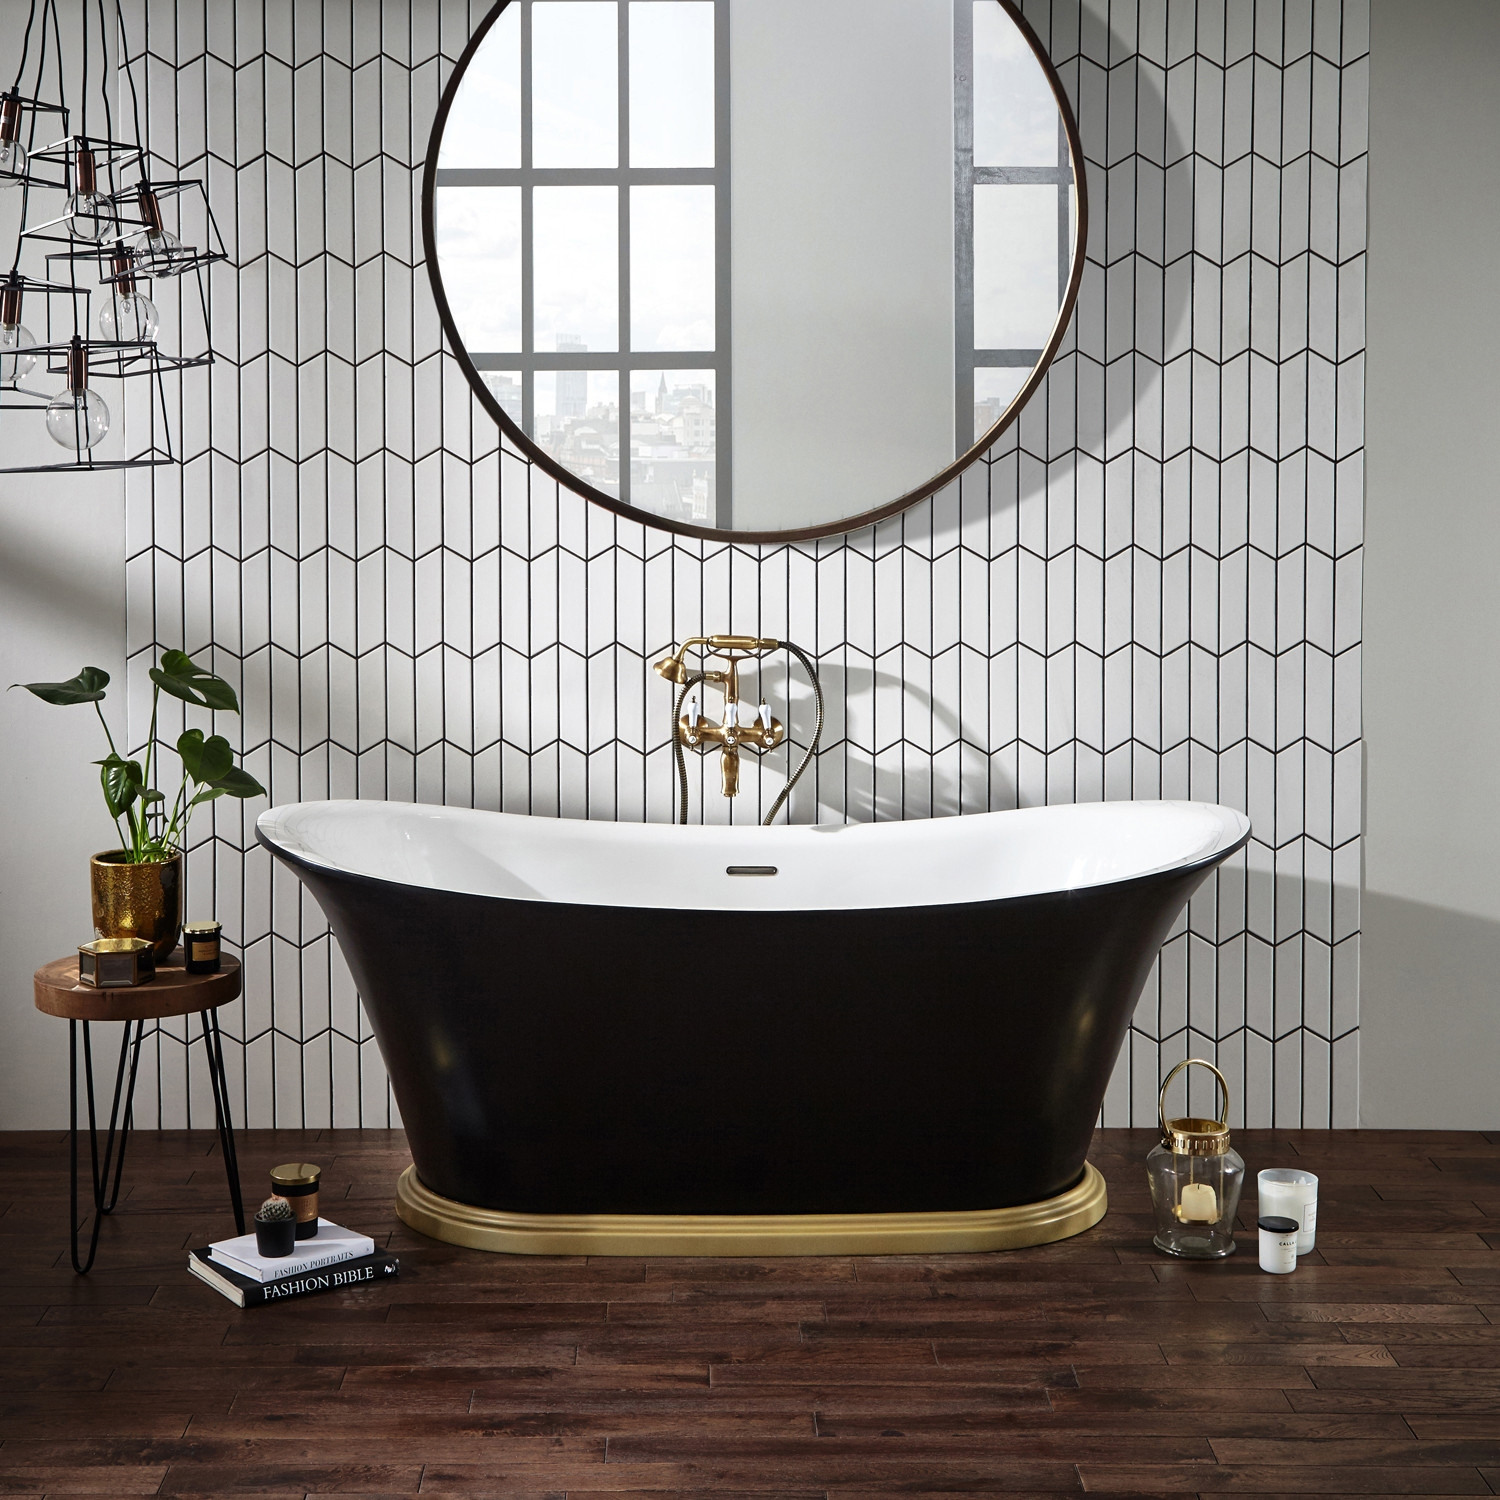 Verona Bow Graphite Traditional Freestanding Bath 1800mm x 800mm with integrated Waste